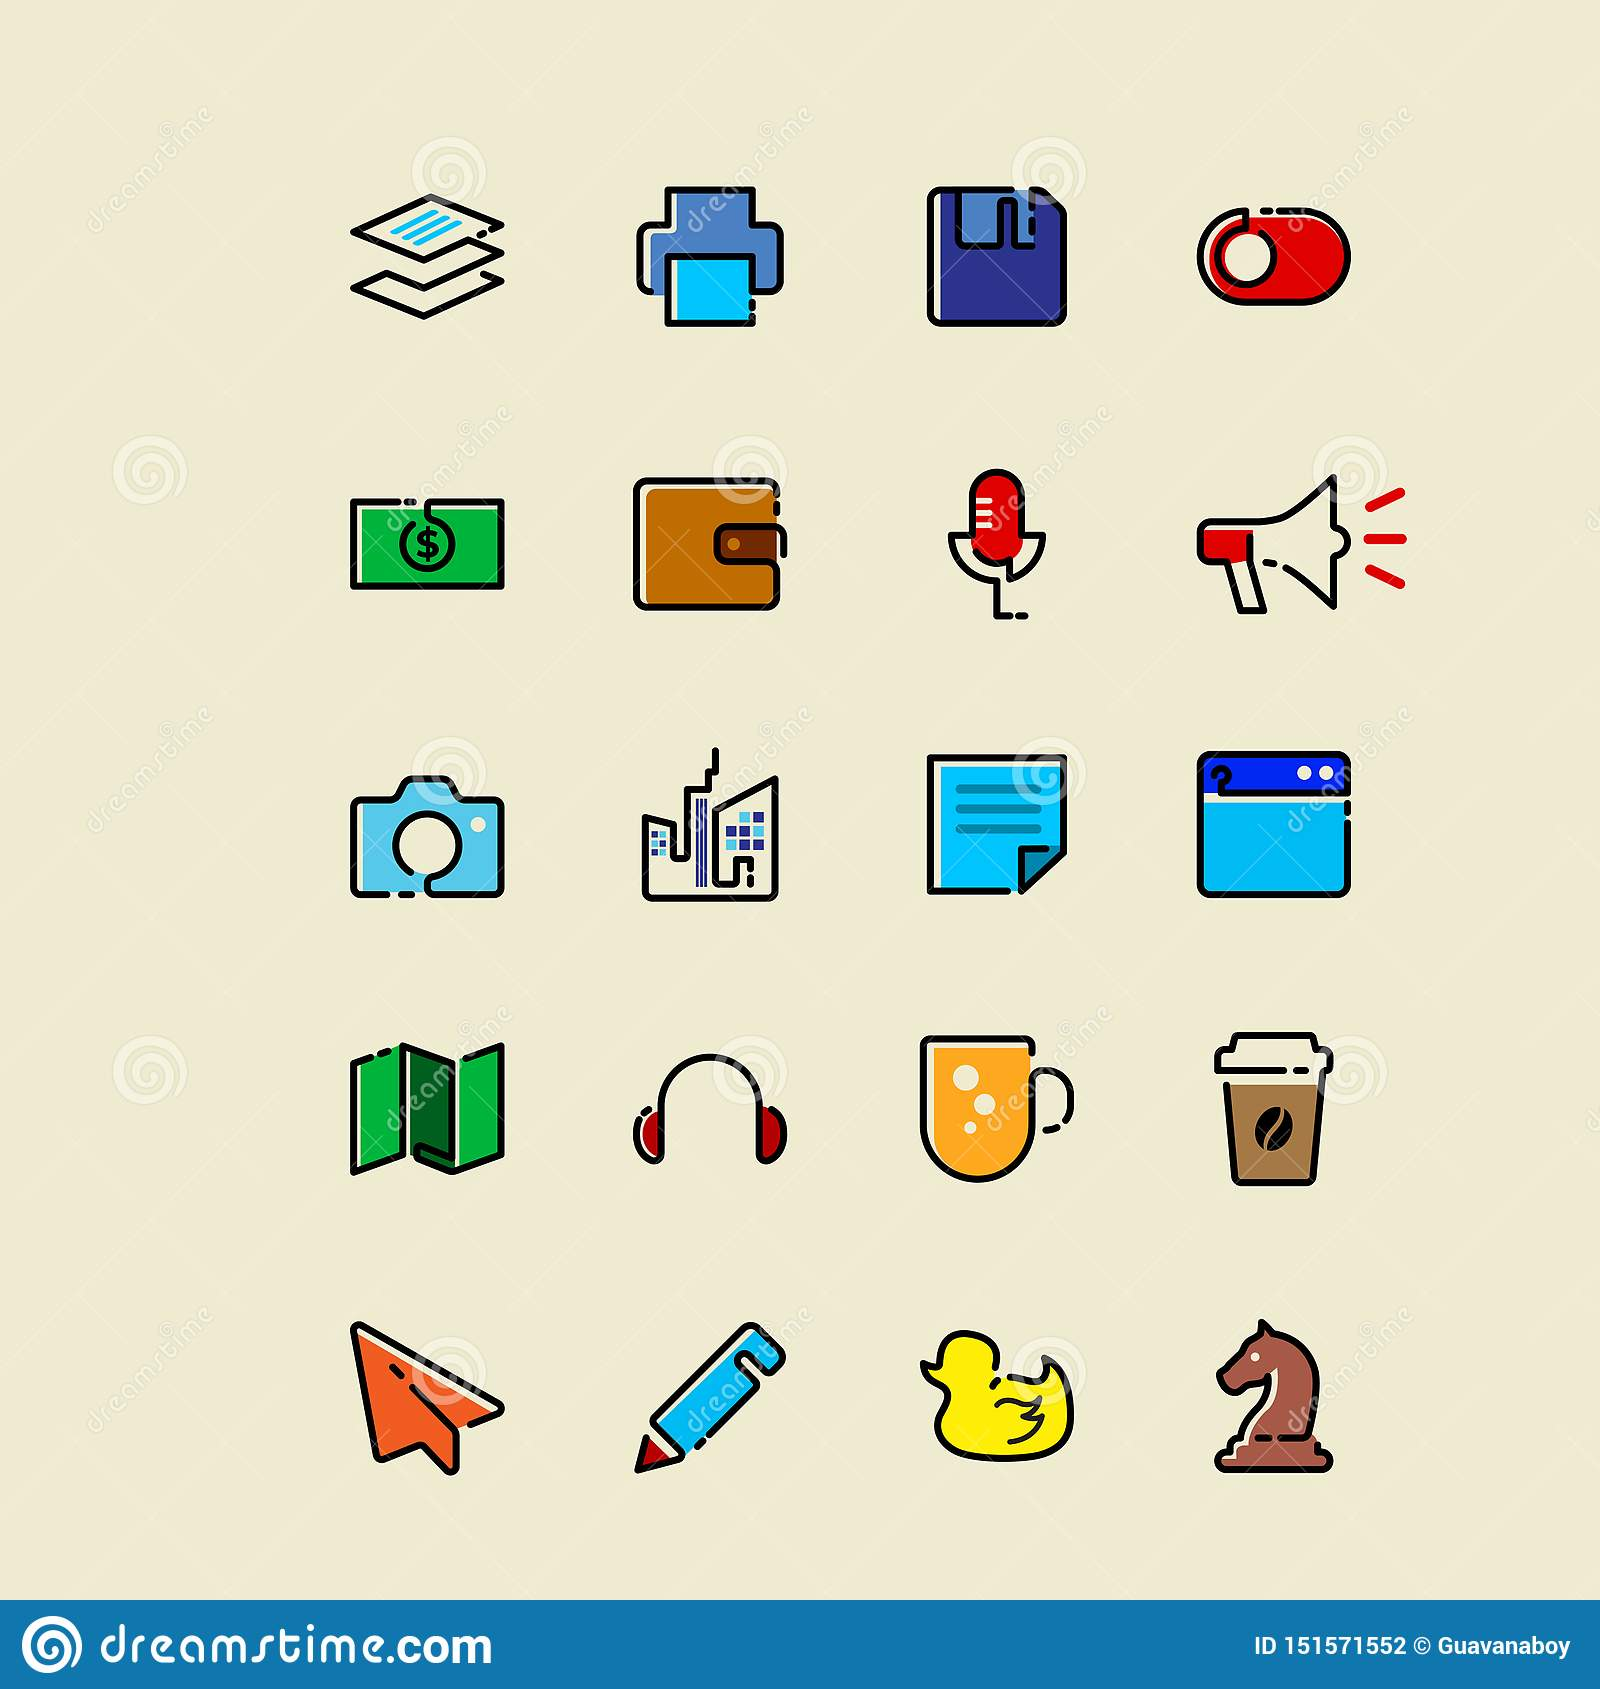 Colored Single line icons